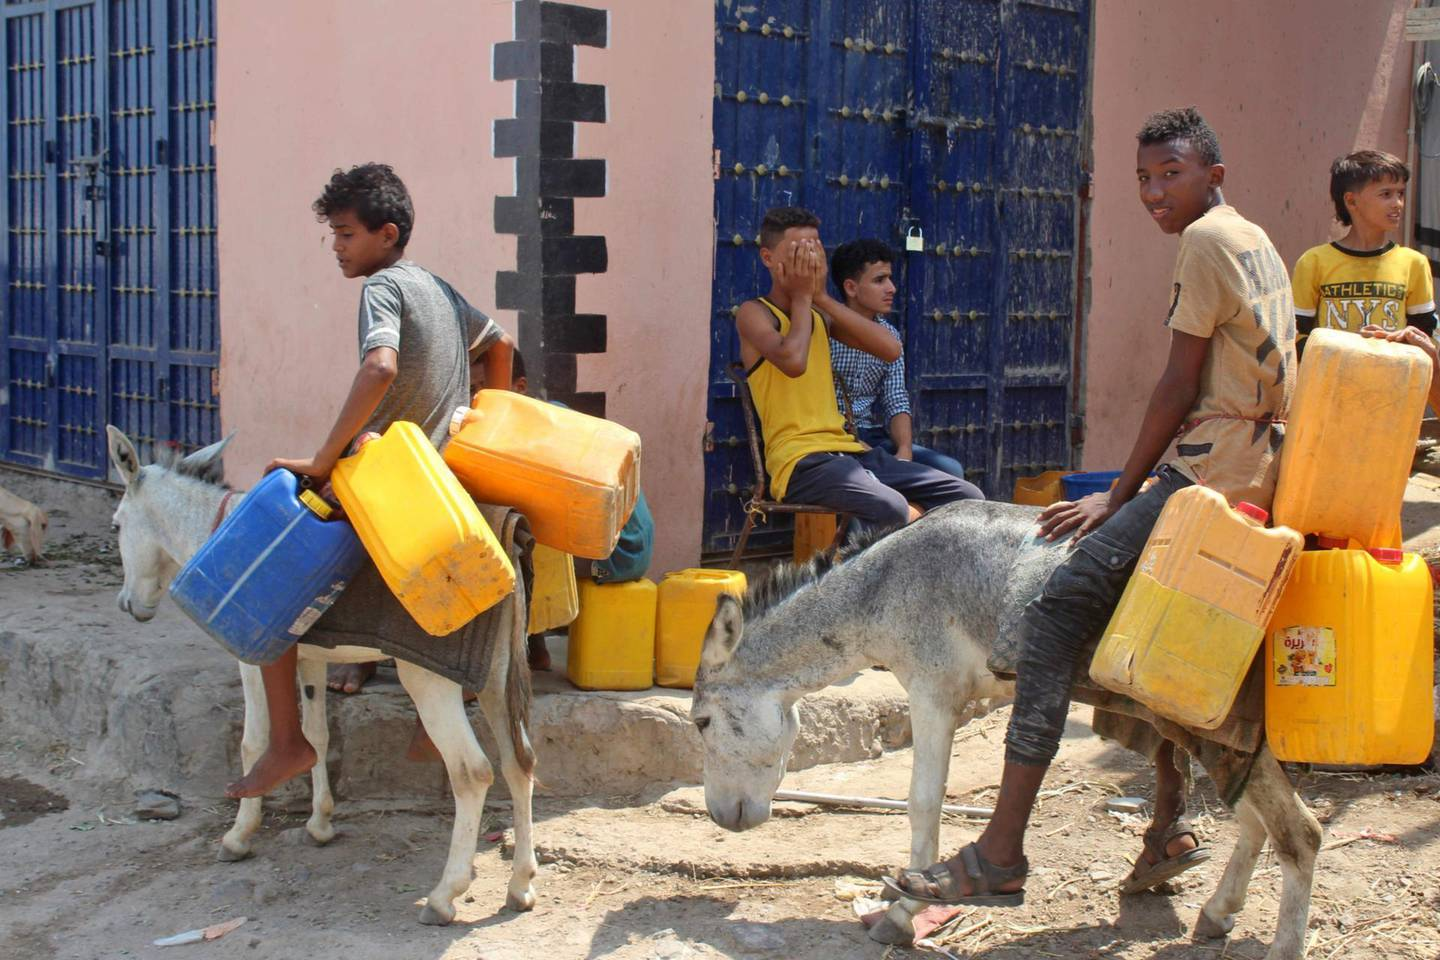 Yemeni youths commute on donkeys carrying plastic jerrycans in the southern city of Aden, on September 16, 2020. Yemenis are resorting to using donkeys to transport water and haul goods, as the long years of conflict that have ravaged the economy make gas-guzzling vehicles unaffordable for many. / AFP / Saleh Al-OBEIDI